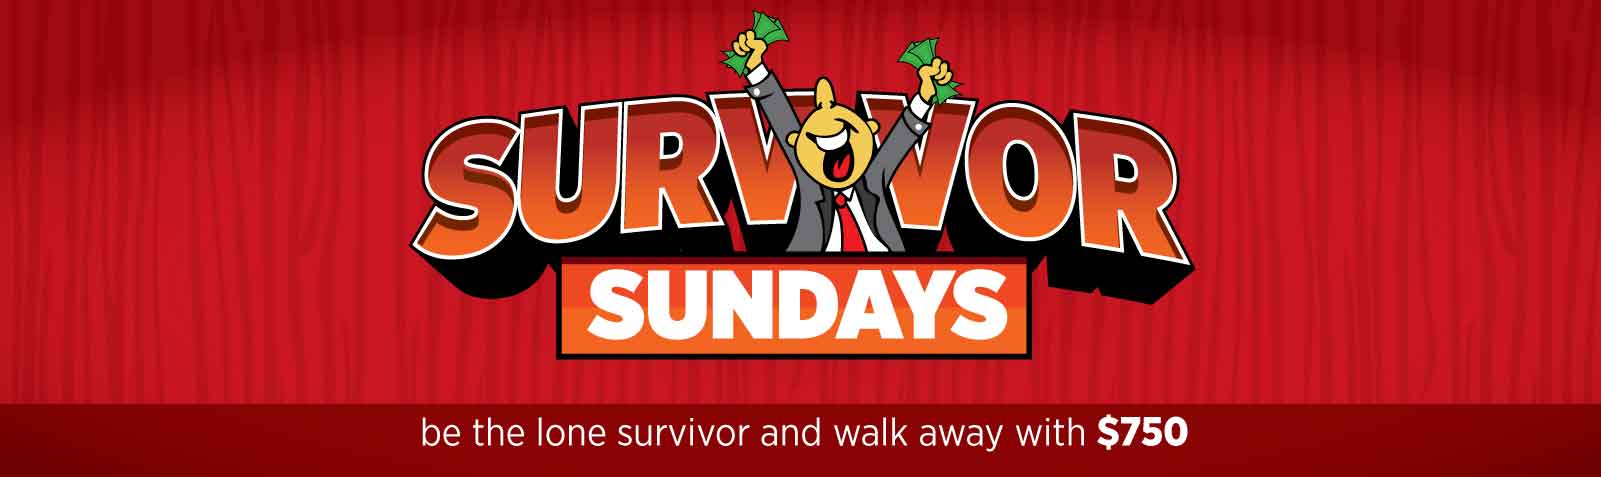 MKT17-023-Survivor-Sundays_Revolution-Slider1